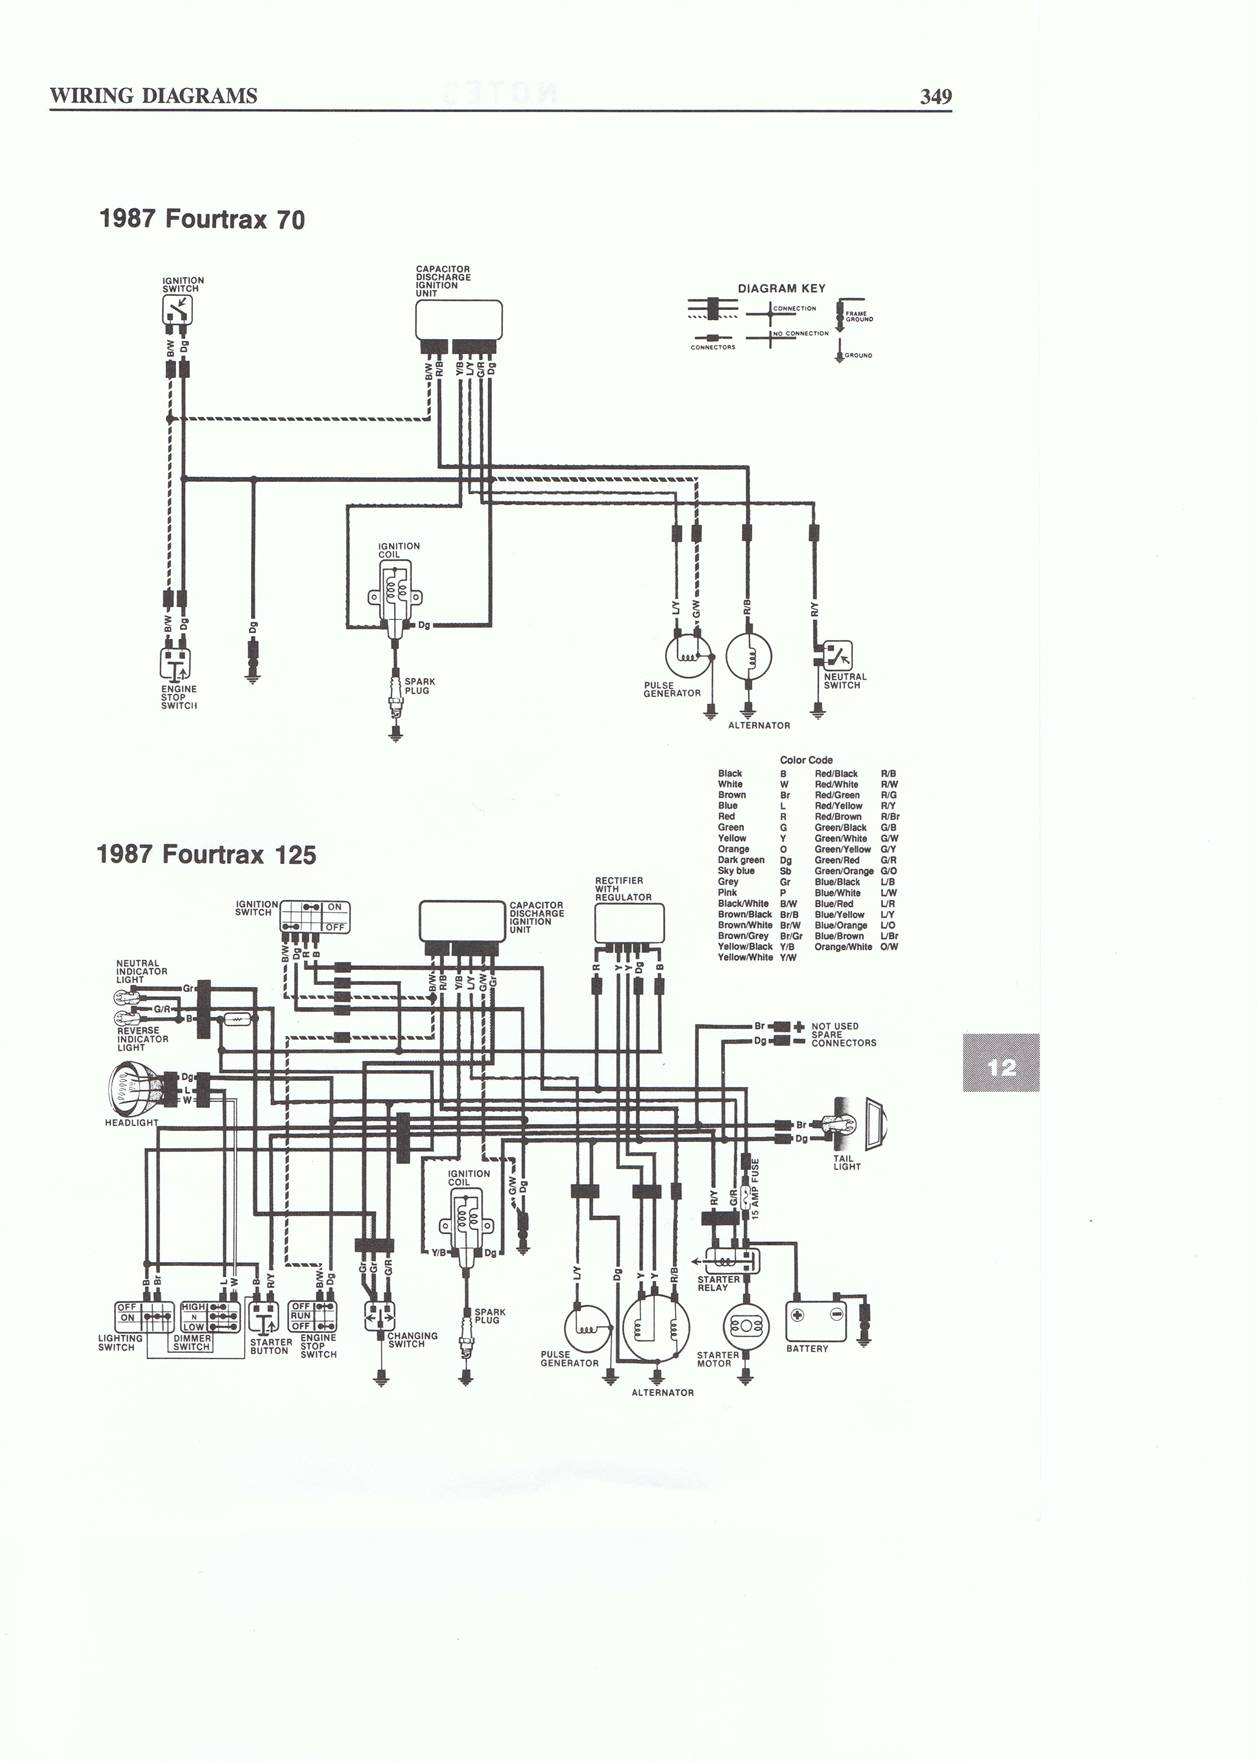 gy6 engine wiring diagram?t=1398725710 gy6 engine wiring diagram engine wiring diagram at webbmarketing.co